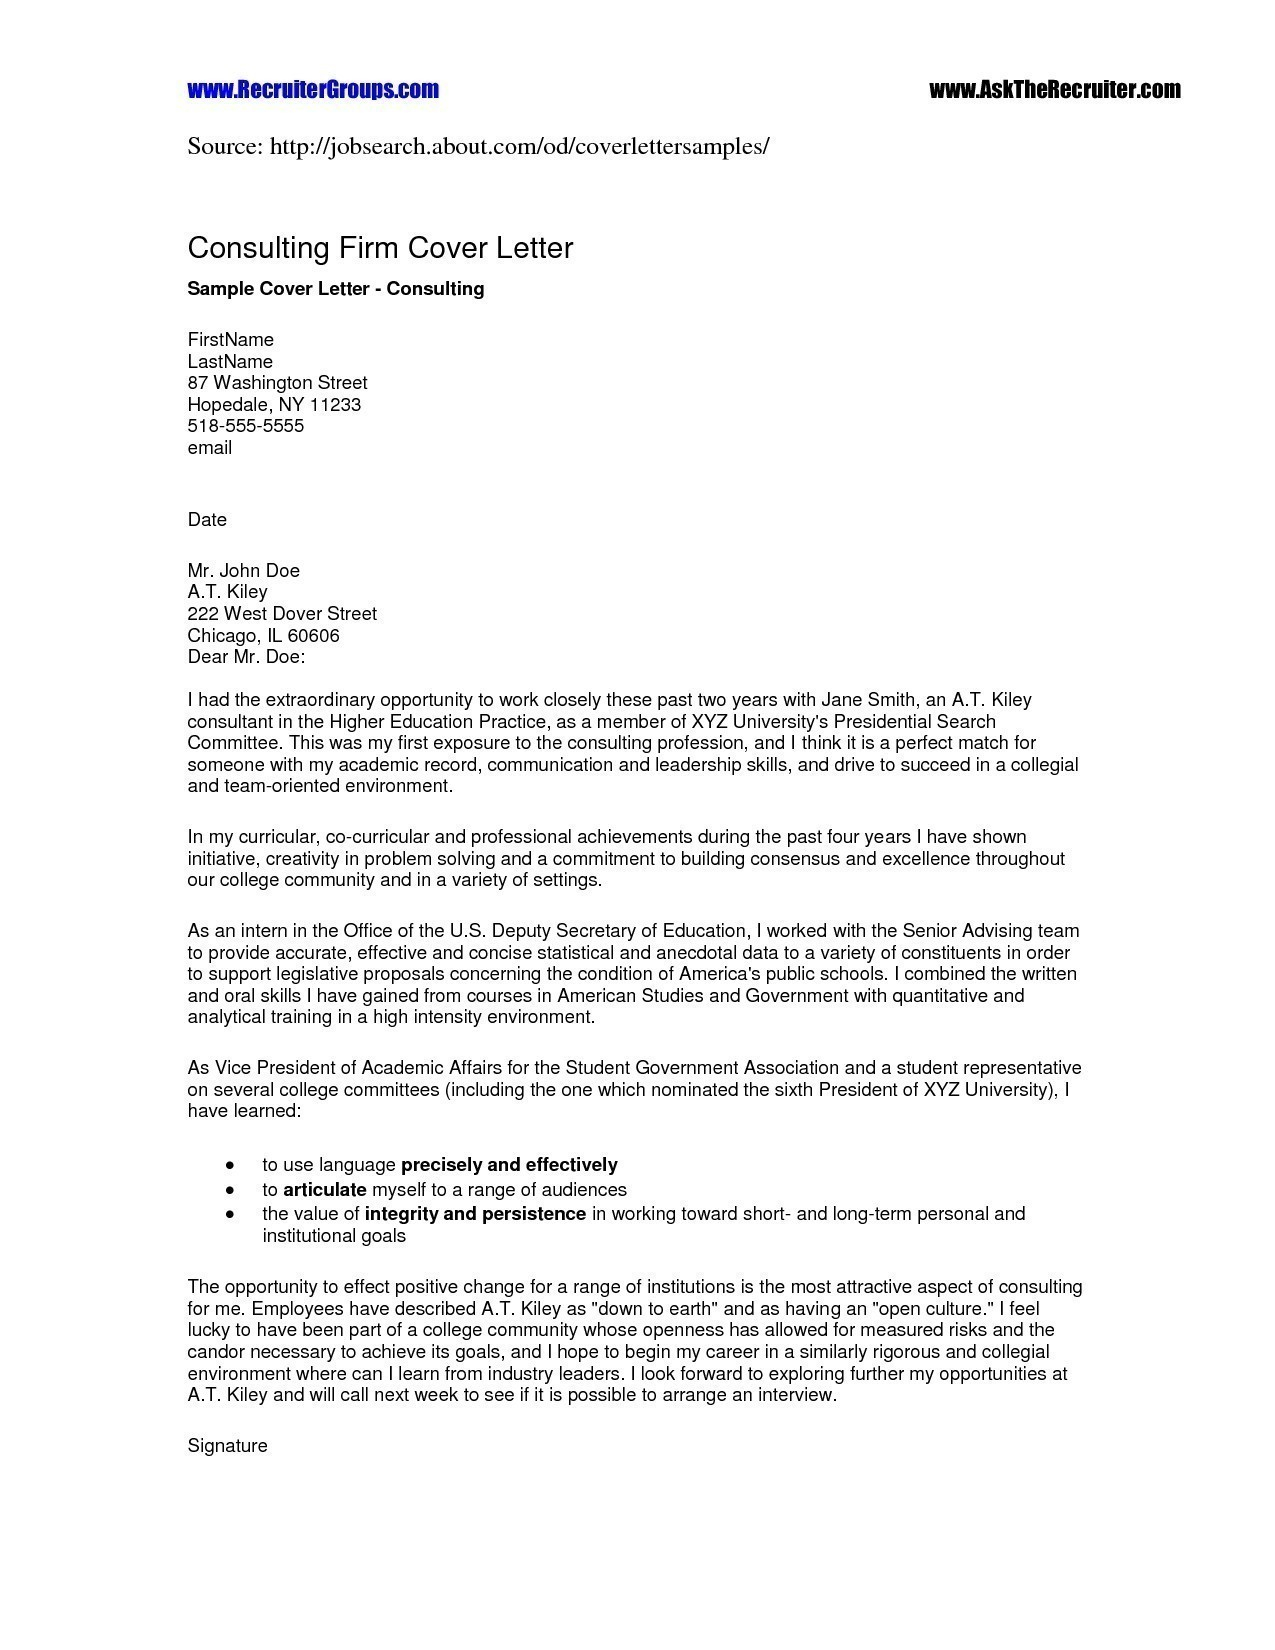 Sample Employee Offer Letter Template - How to Write Job Fer Letter Fresh Job Fer Letter Sample Best Job